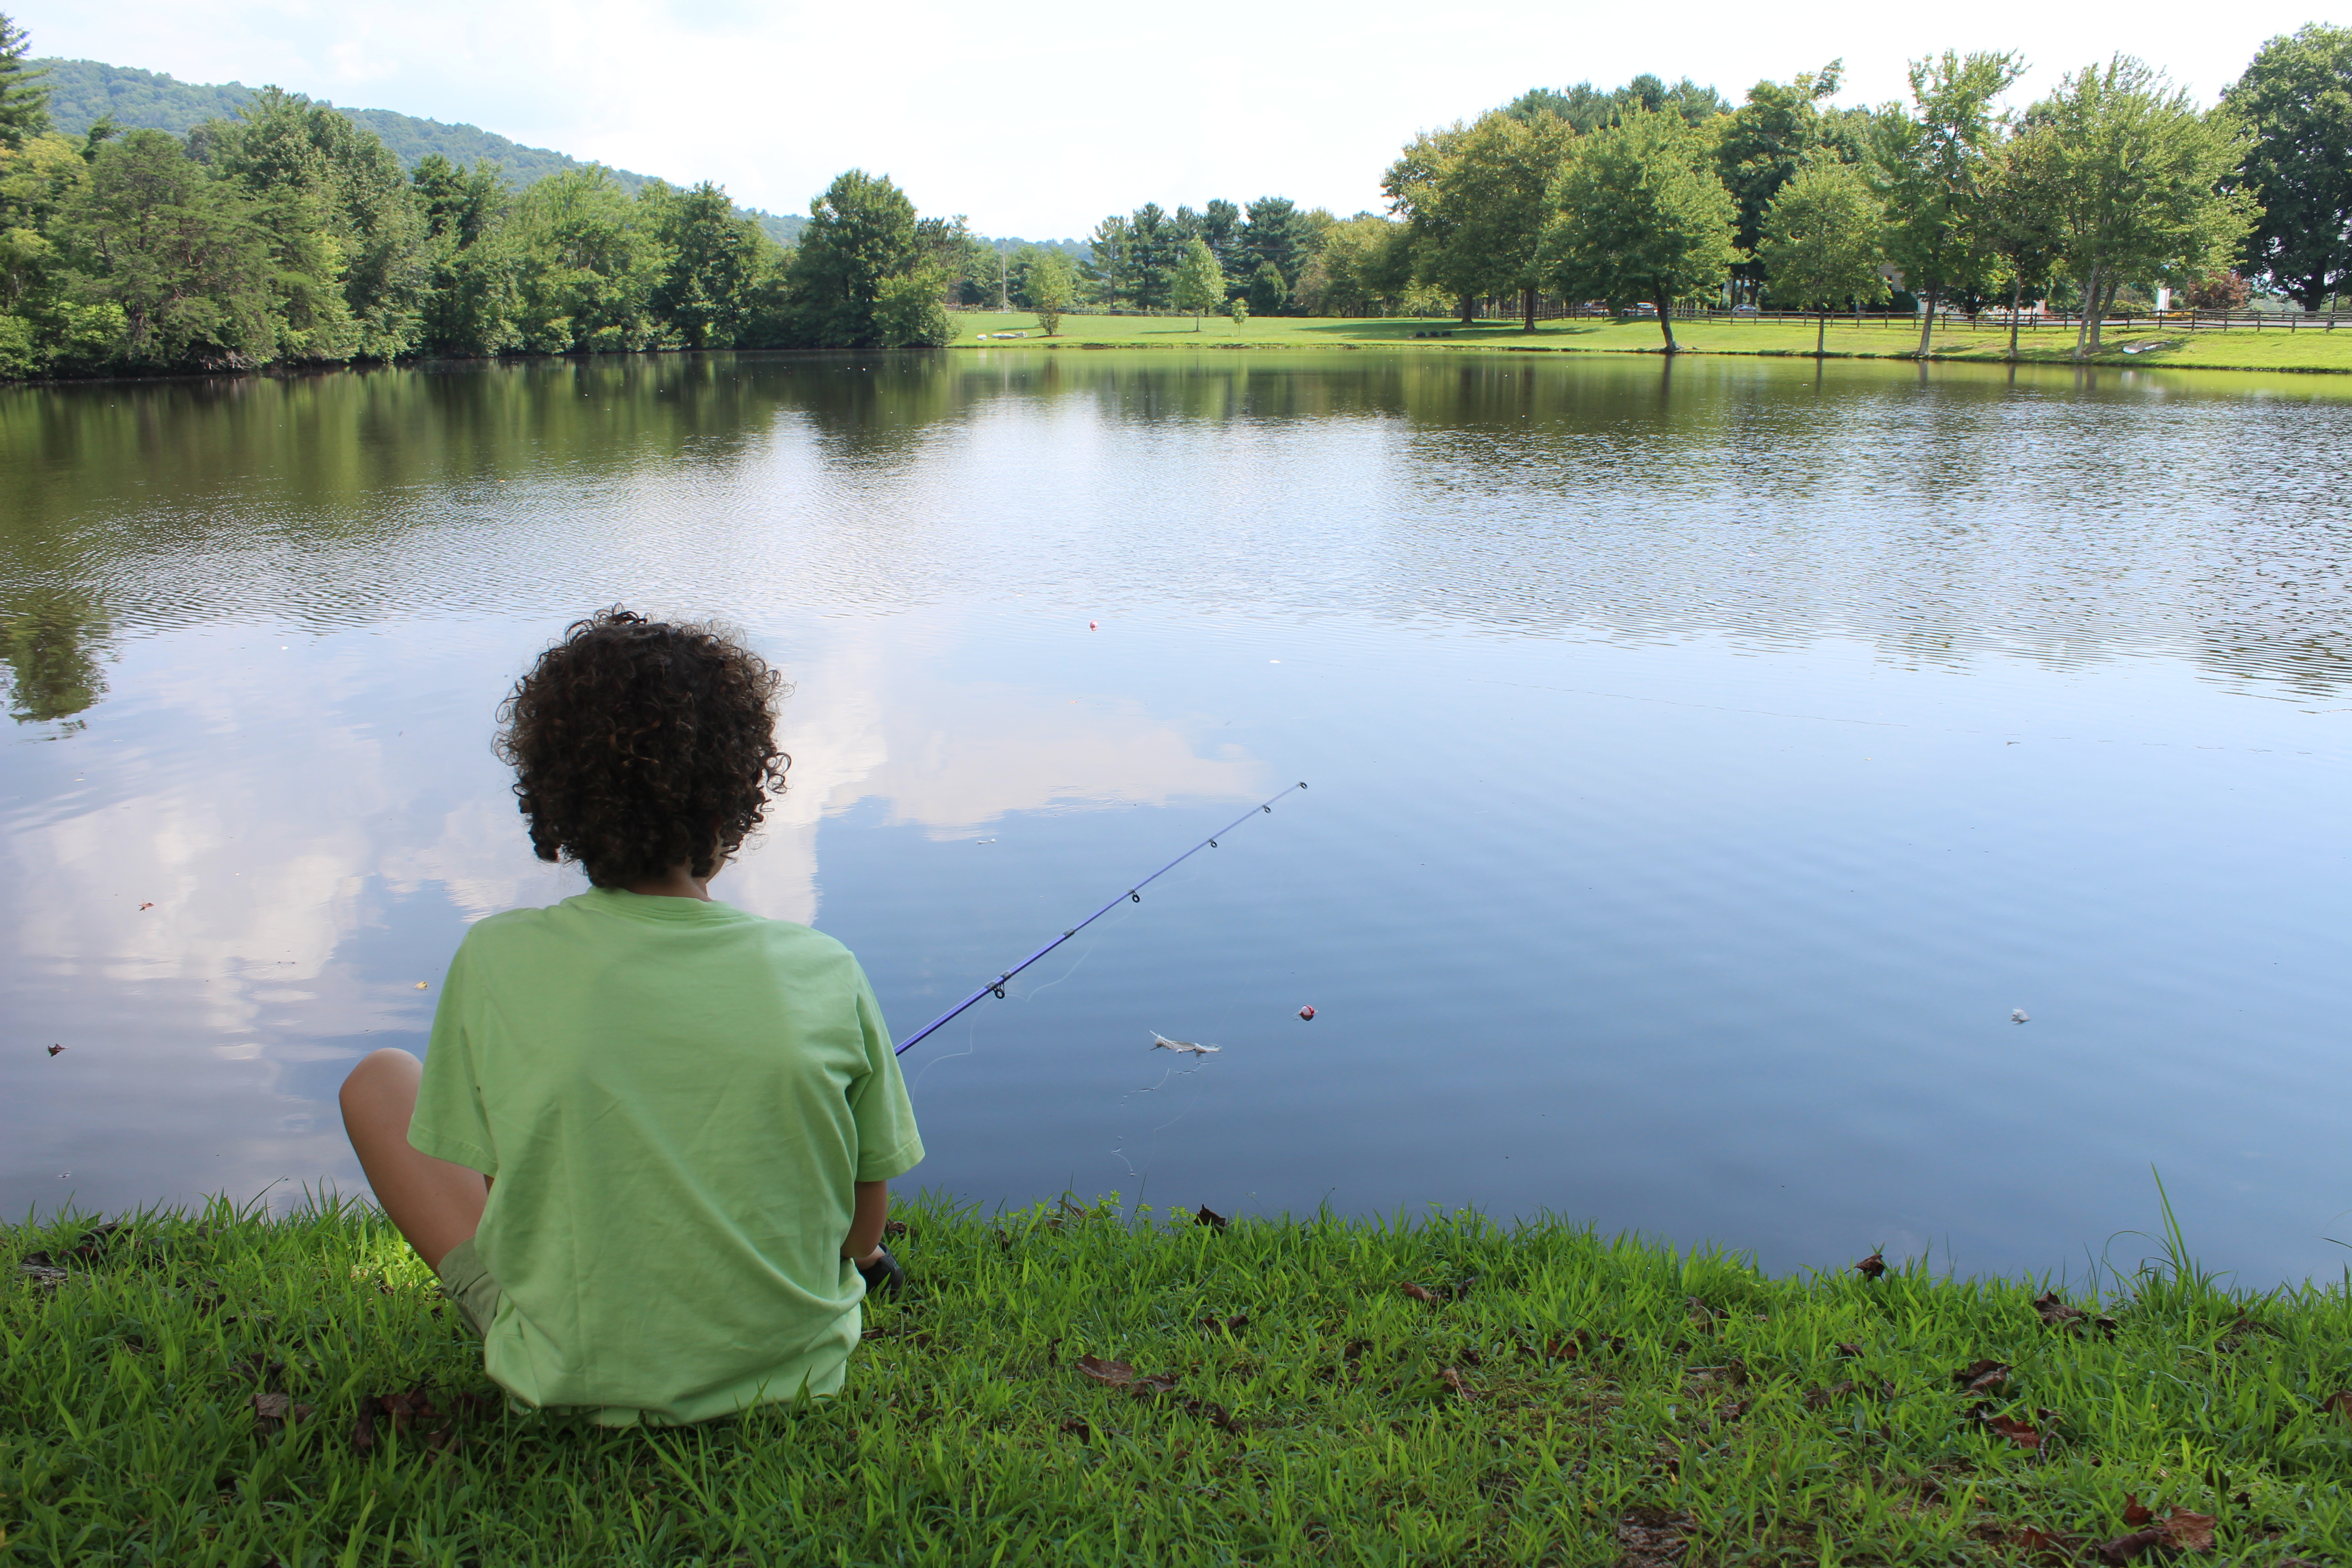 A camper fishes by the lake.